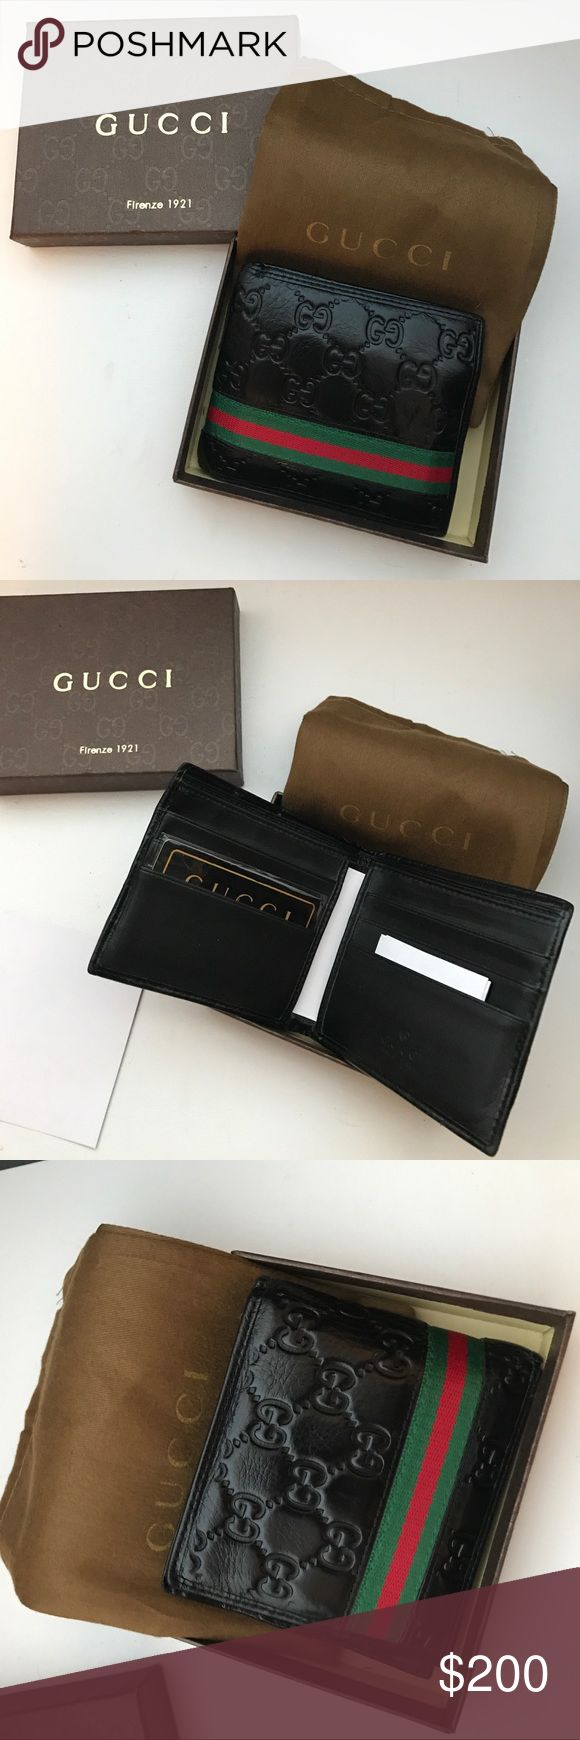 Gucci bi-fold wallet Has 6 card slots and 2 slots for dollar bills.  Comes with dust bag & box.  Haven't had it long it's in excellent condition barely used.  Just decided to go in a different direction. Gucci Accessories Key & Card Holders